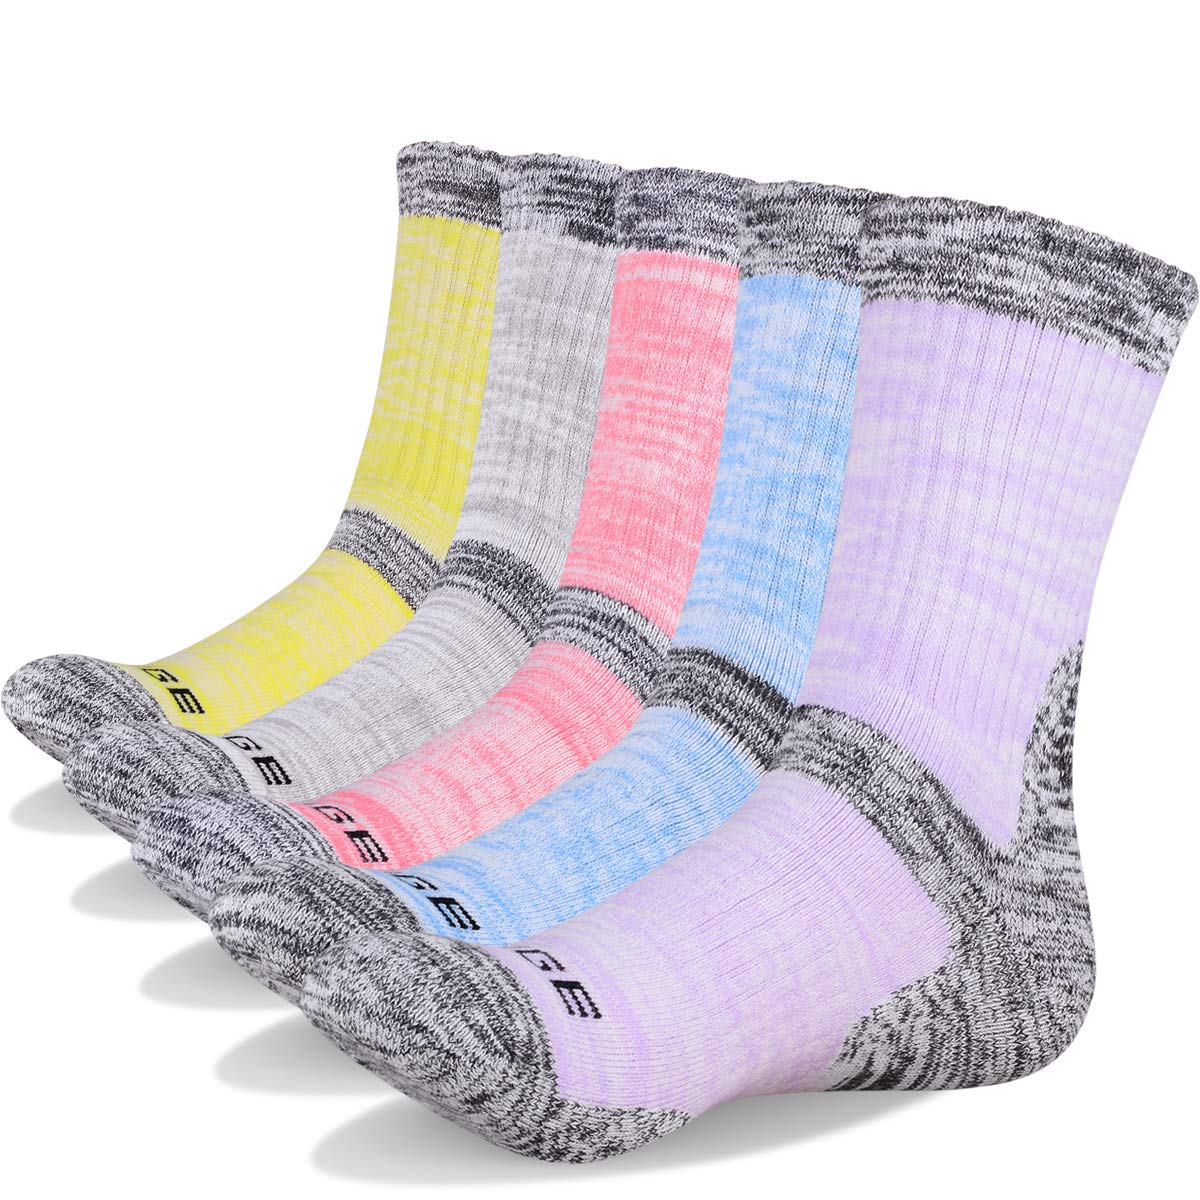 Women's Wicking Cushion Crew Multi Performance Hiking Socks by LECIEL